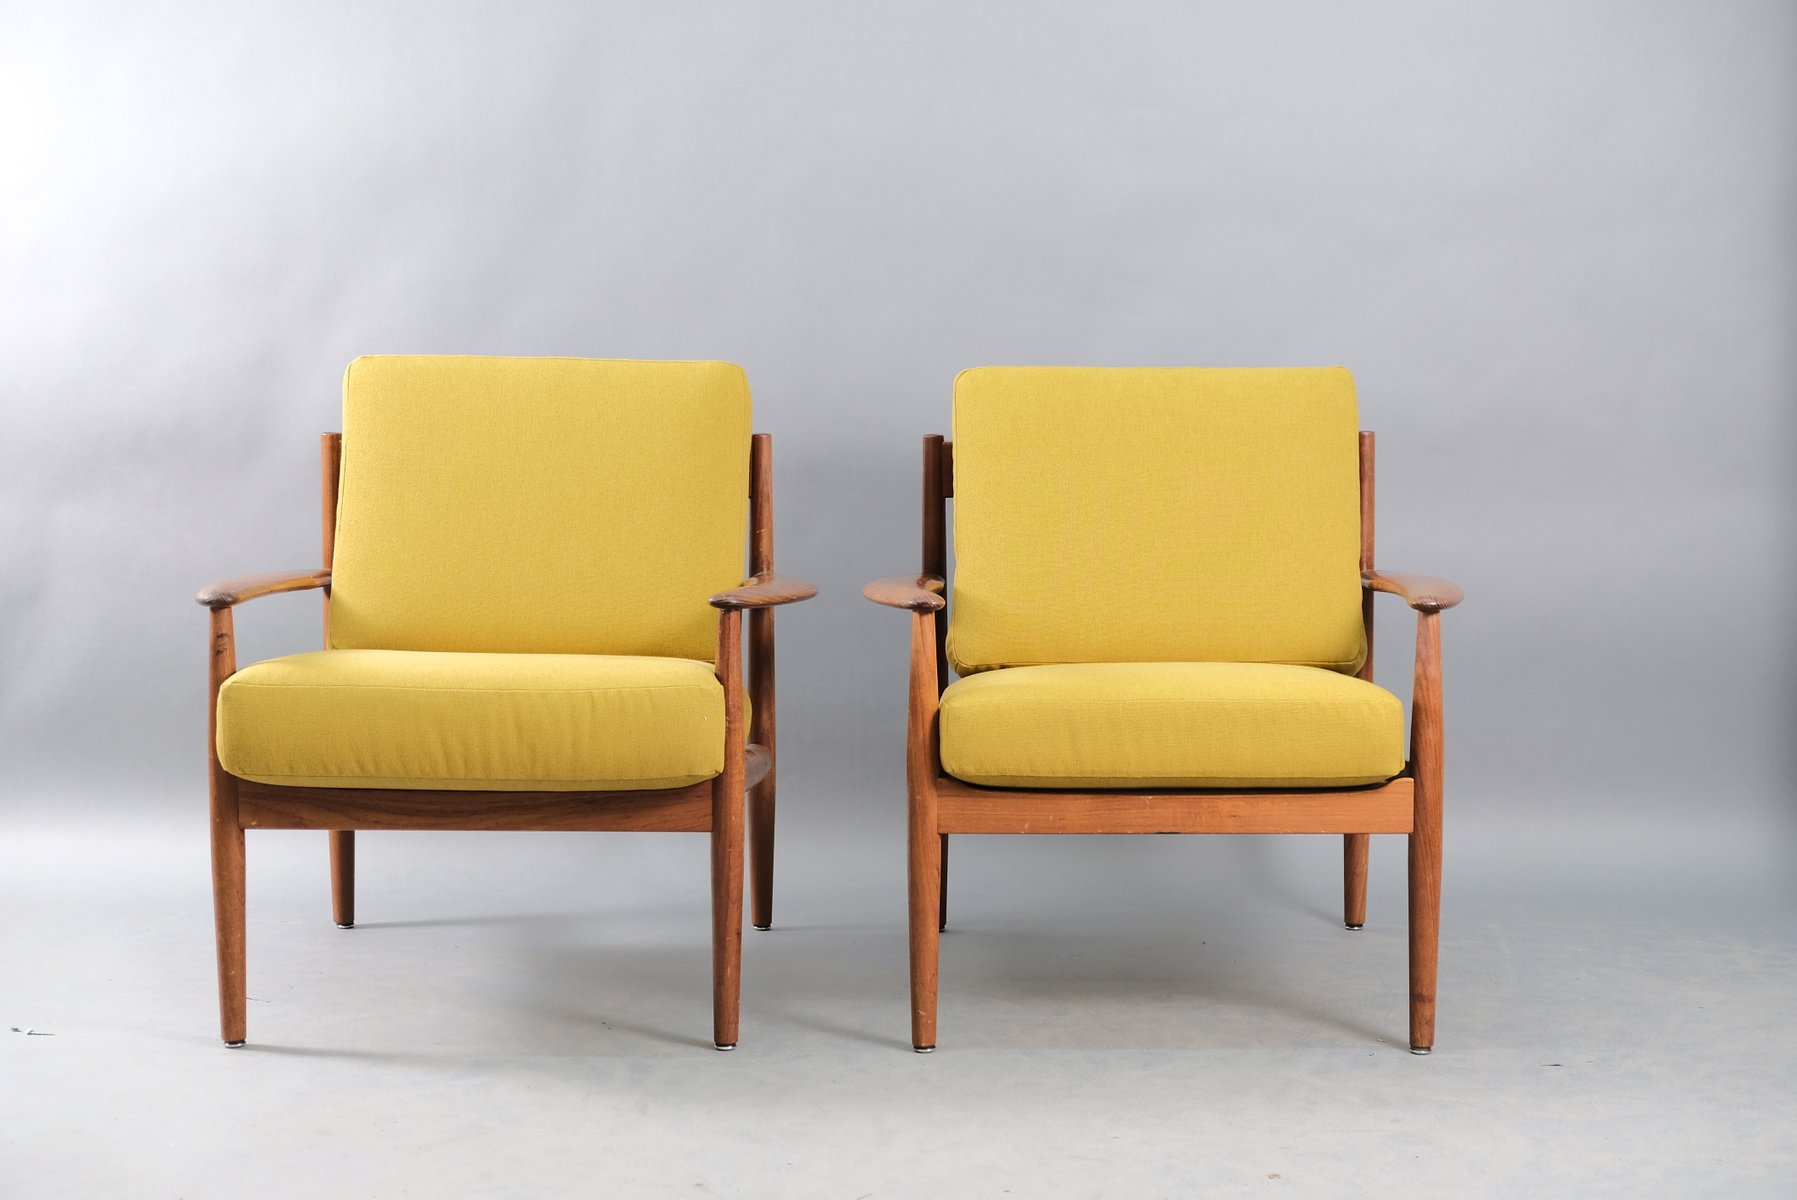 Mid Century Danish Teak Lounge Chairs By Grete Jalk For Cado Set Of 2 For Sale At Pamono